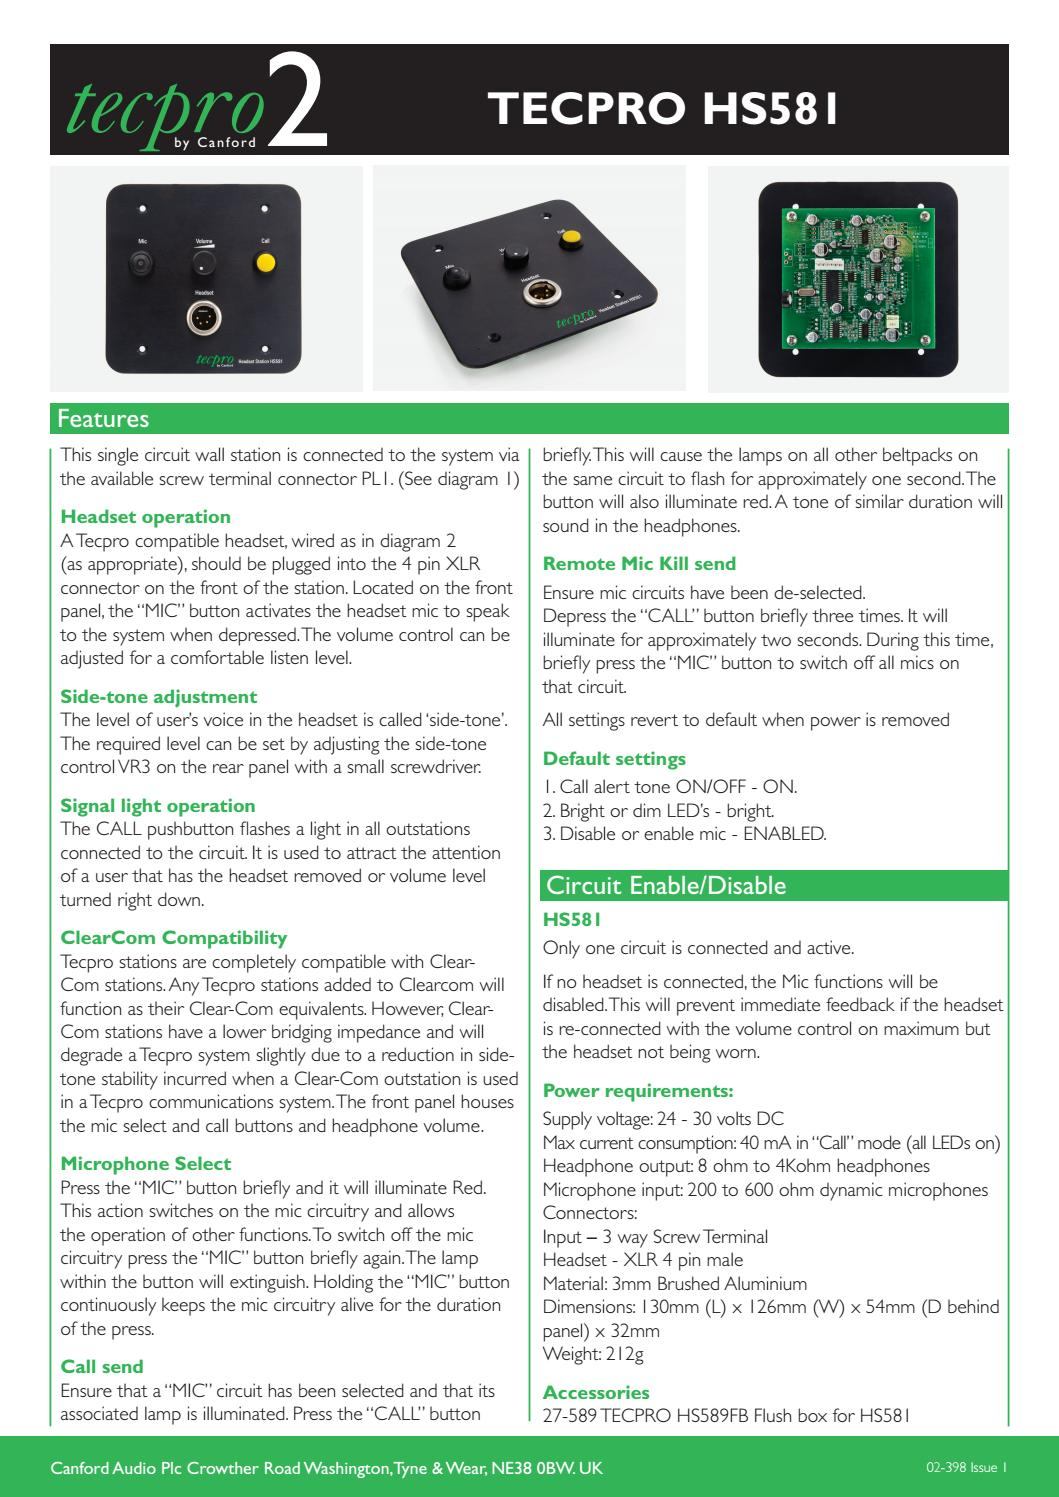 02-398 TECPRO HS581 by Canford Audio - issuu